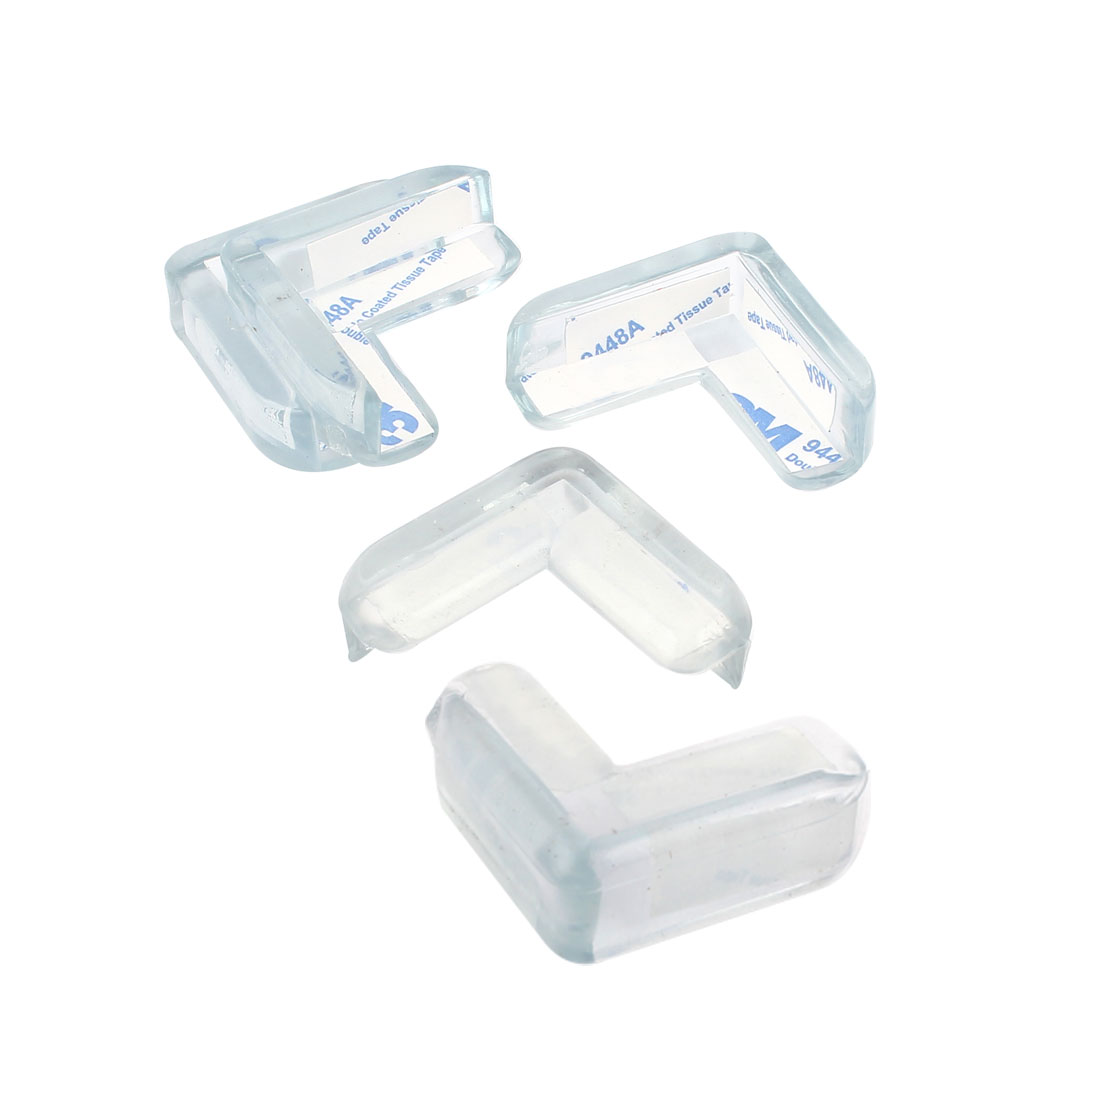 4 Pcs Clear Soft Rubber Desk Corner Pad Cover Protector Cushion